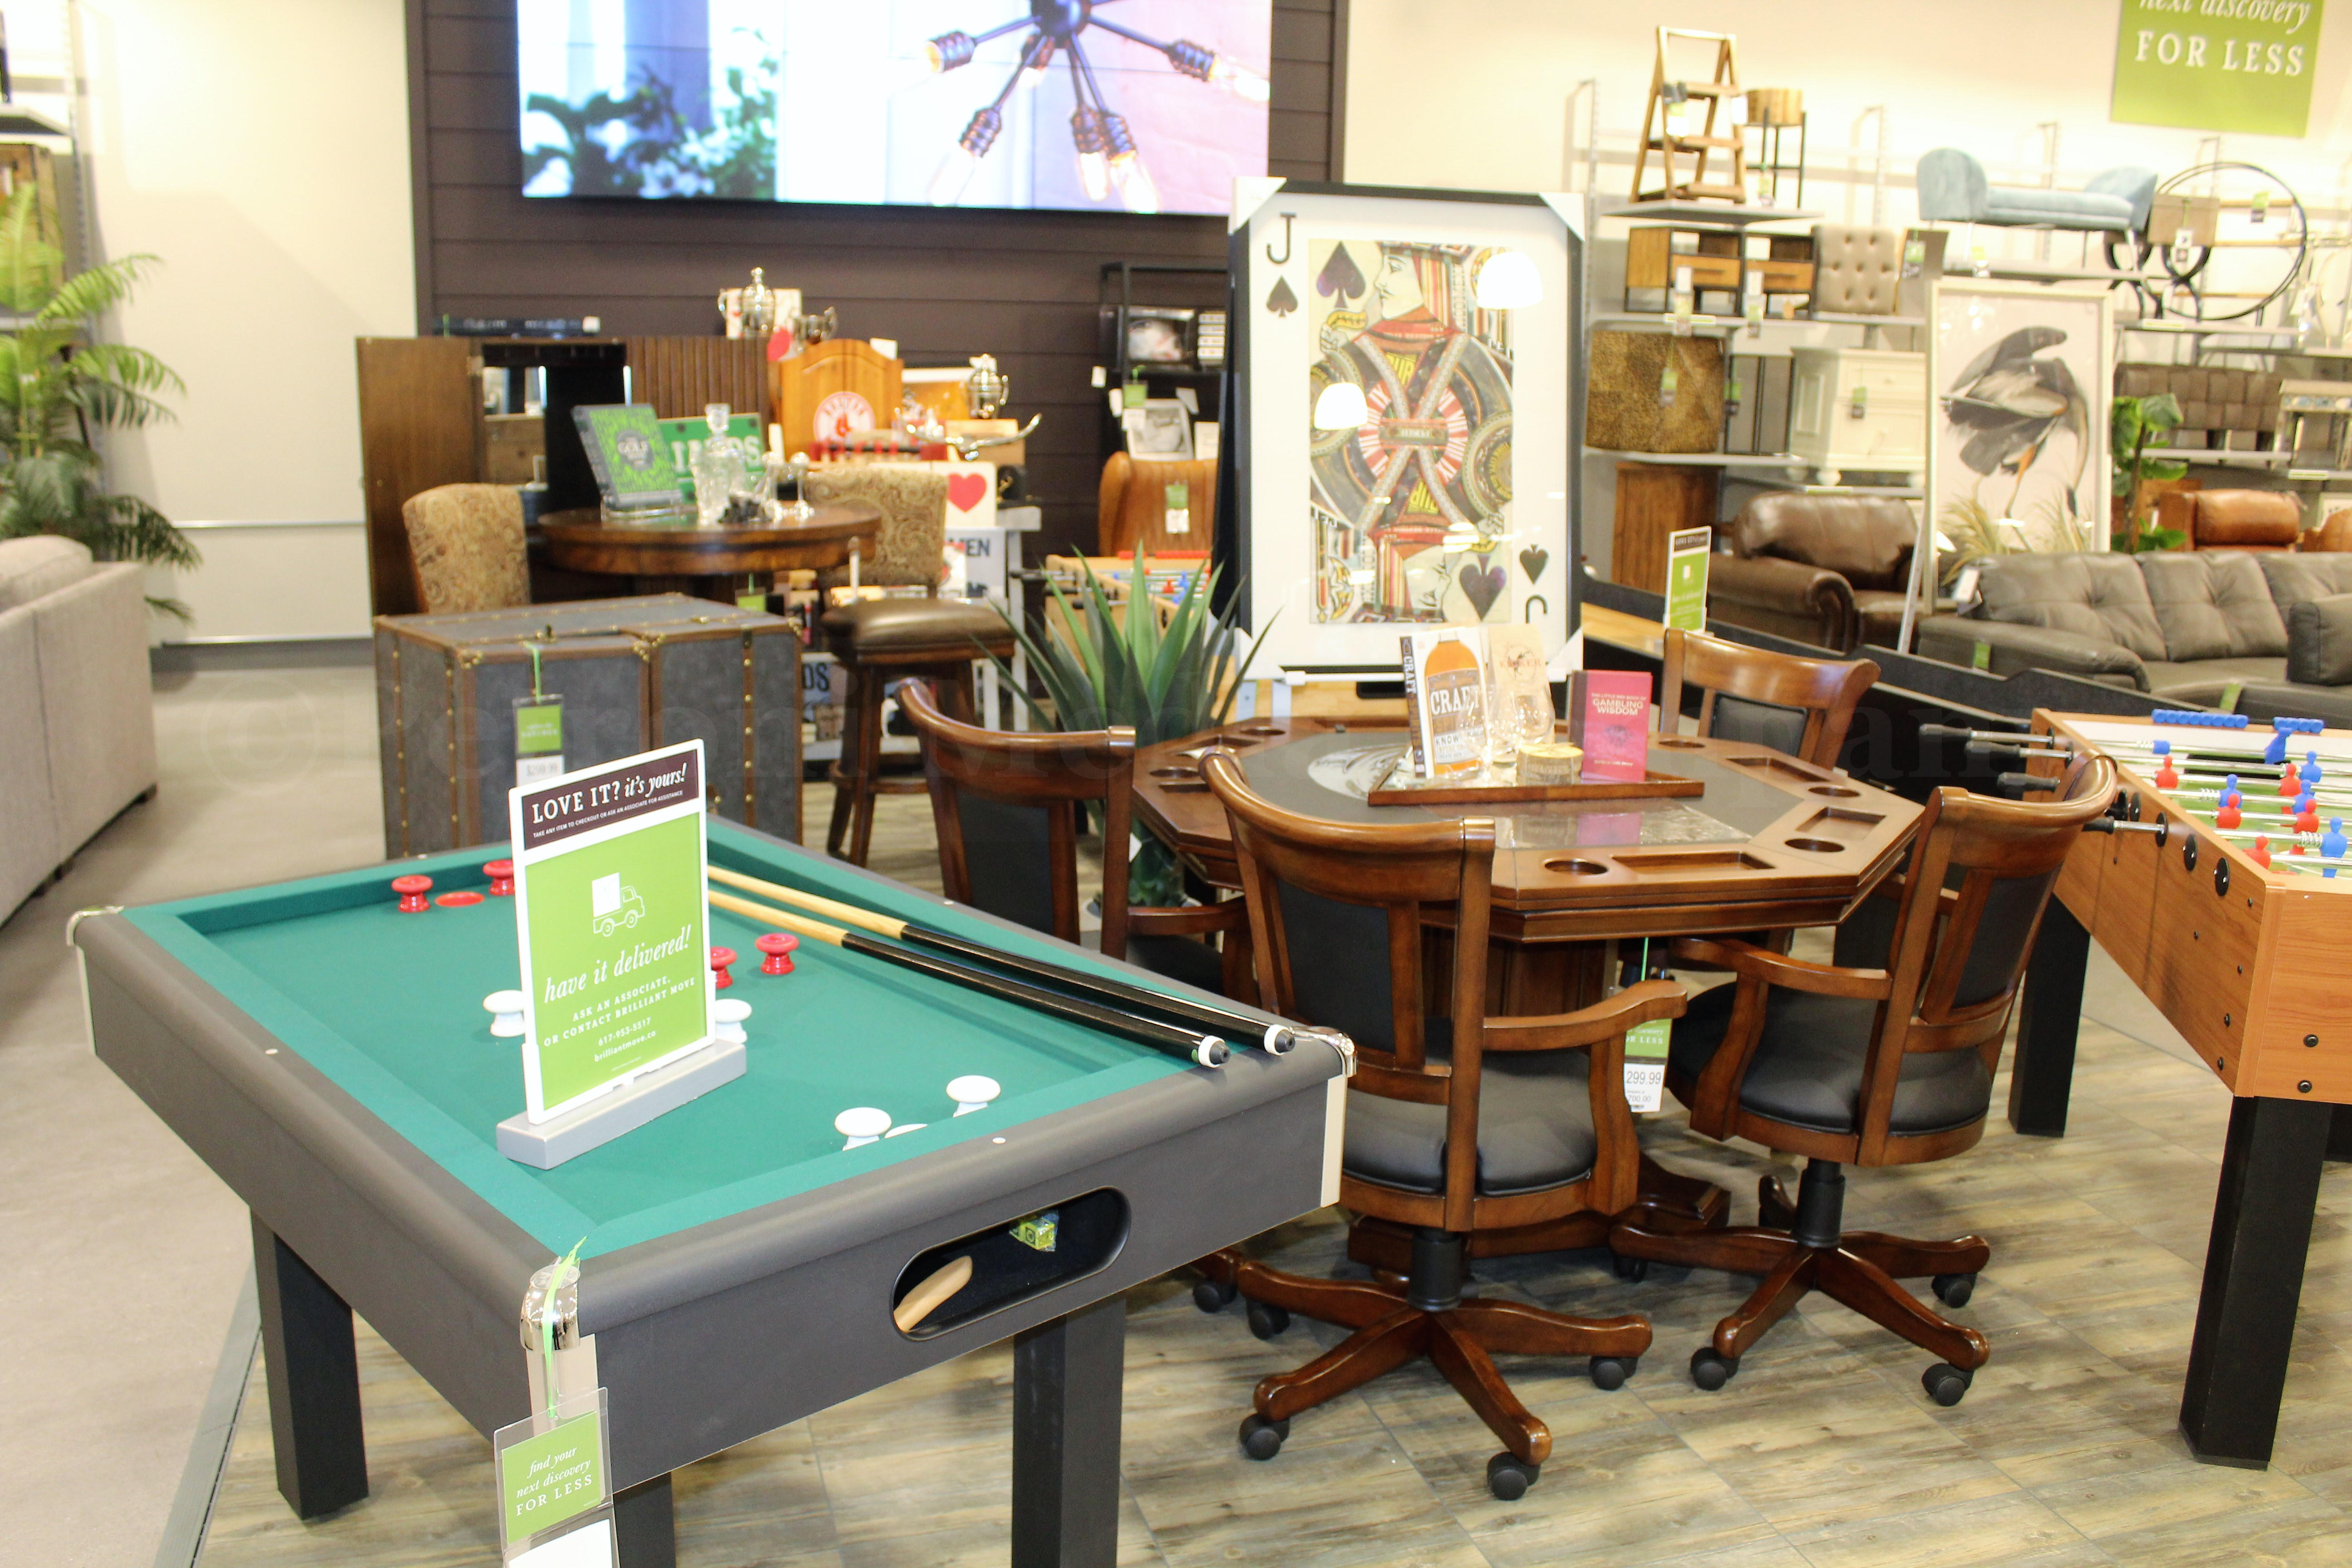 Slideshow tjx opens americas first homesense in framingham need a pendant lamp for the dining room want a billiard table for the family room need a new rug for the childrens play room geotapseo Choice Image